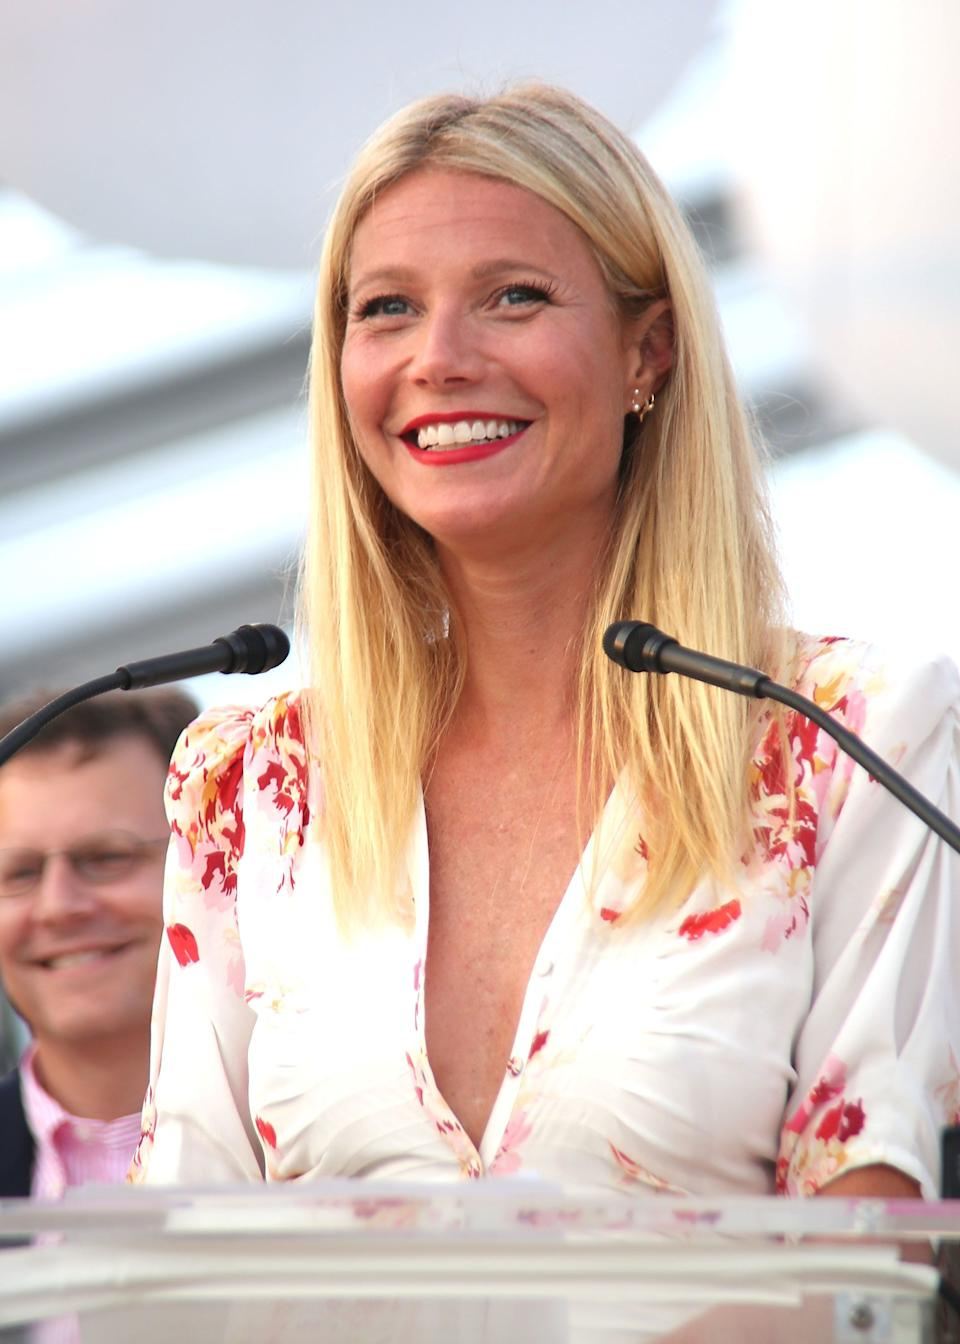 """Gwyneth Paltrow hasn't had a bad word to say about Chris Martin ever since they """"consciously uncoupled"""" in 2014, and even spoke favourably about his relationship with Jennifer Lawrence.<br /><br /> Instead, she focused on her own career, her family and friends, and the continuing growth of her site, Goop. Now that's how you tackle a break-up like a boss."""